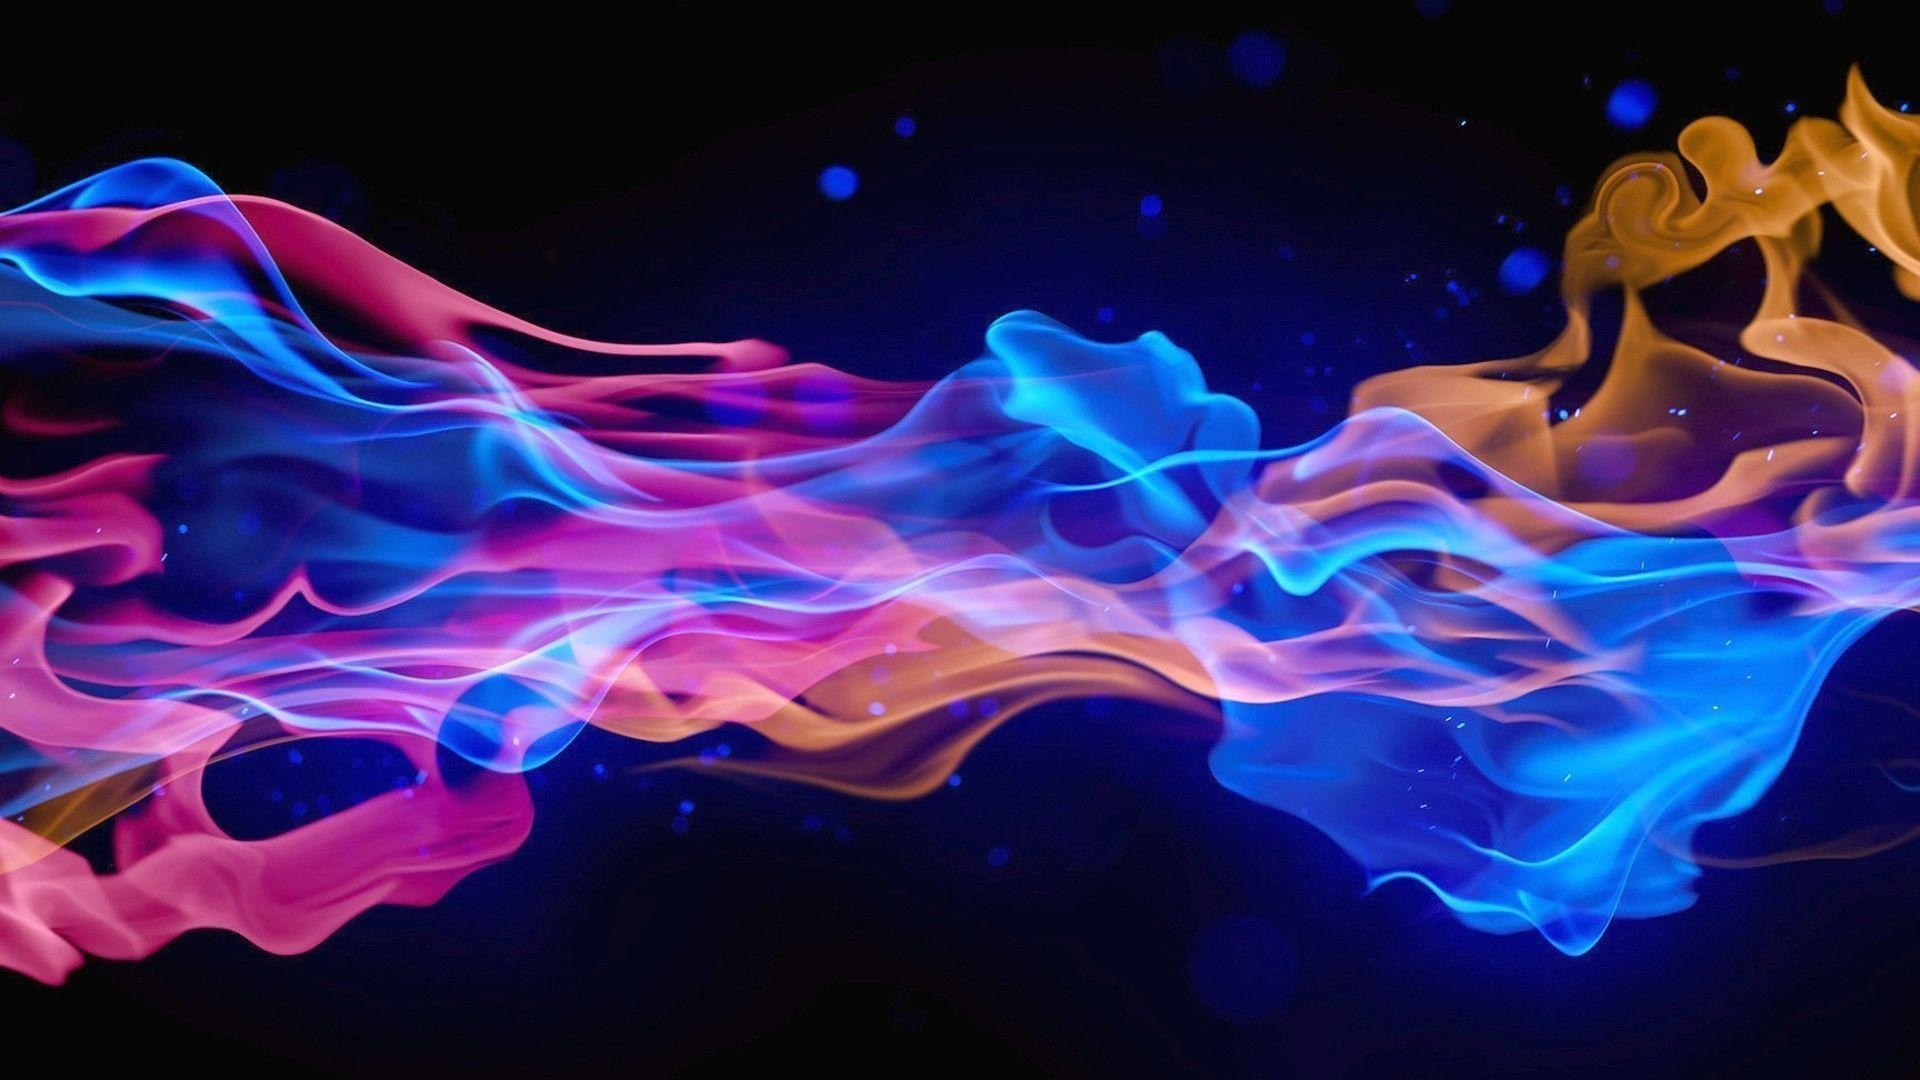 <b>Purple Flames Wallpapers</b> in jpg format for free download